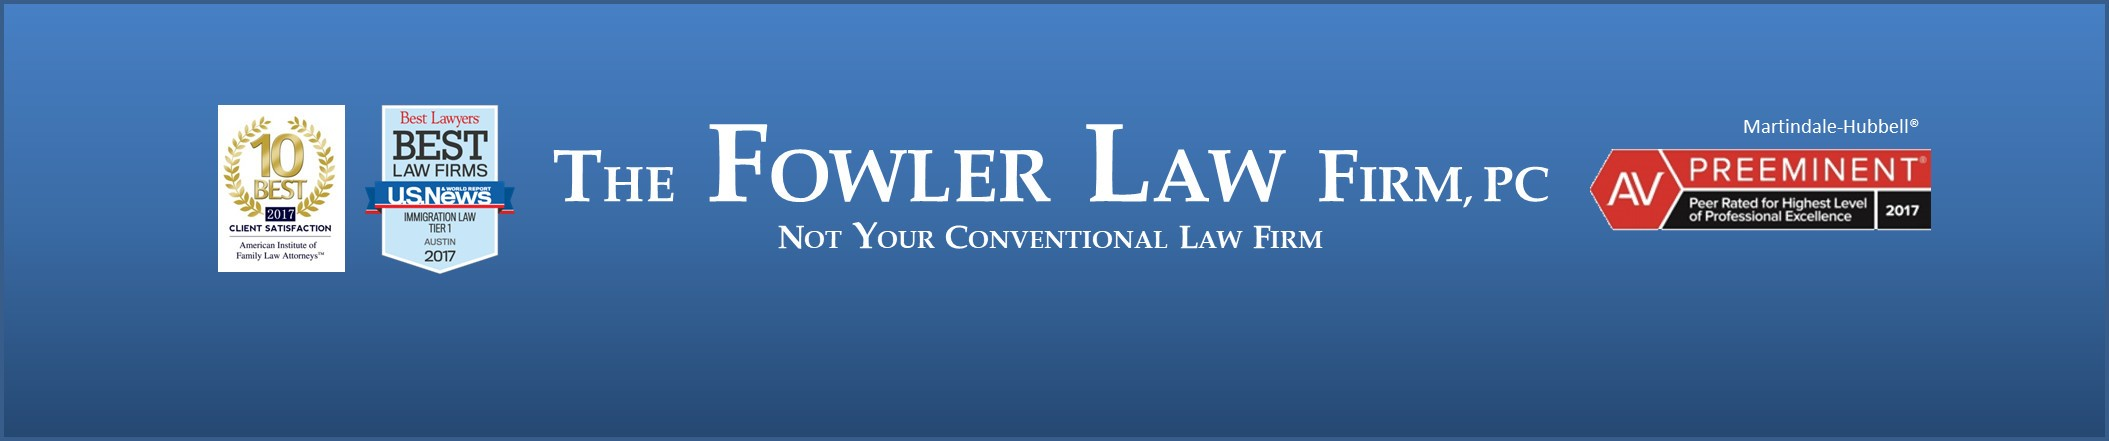 The Fowler Law Firm   LinkedIn